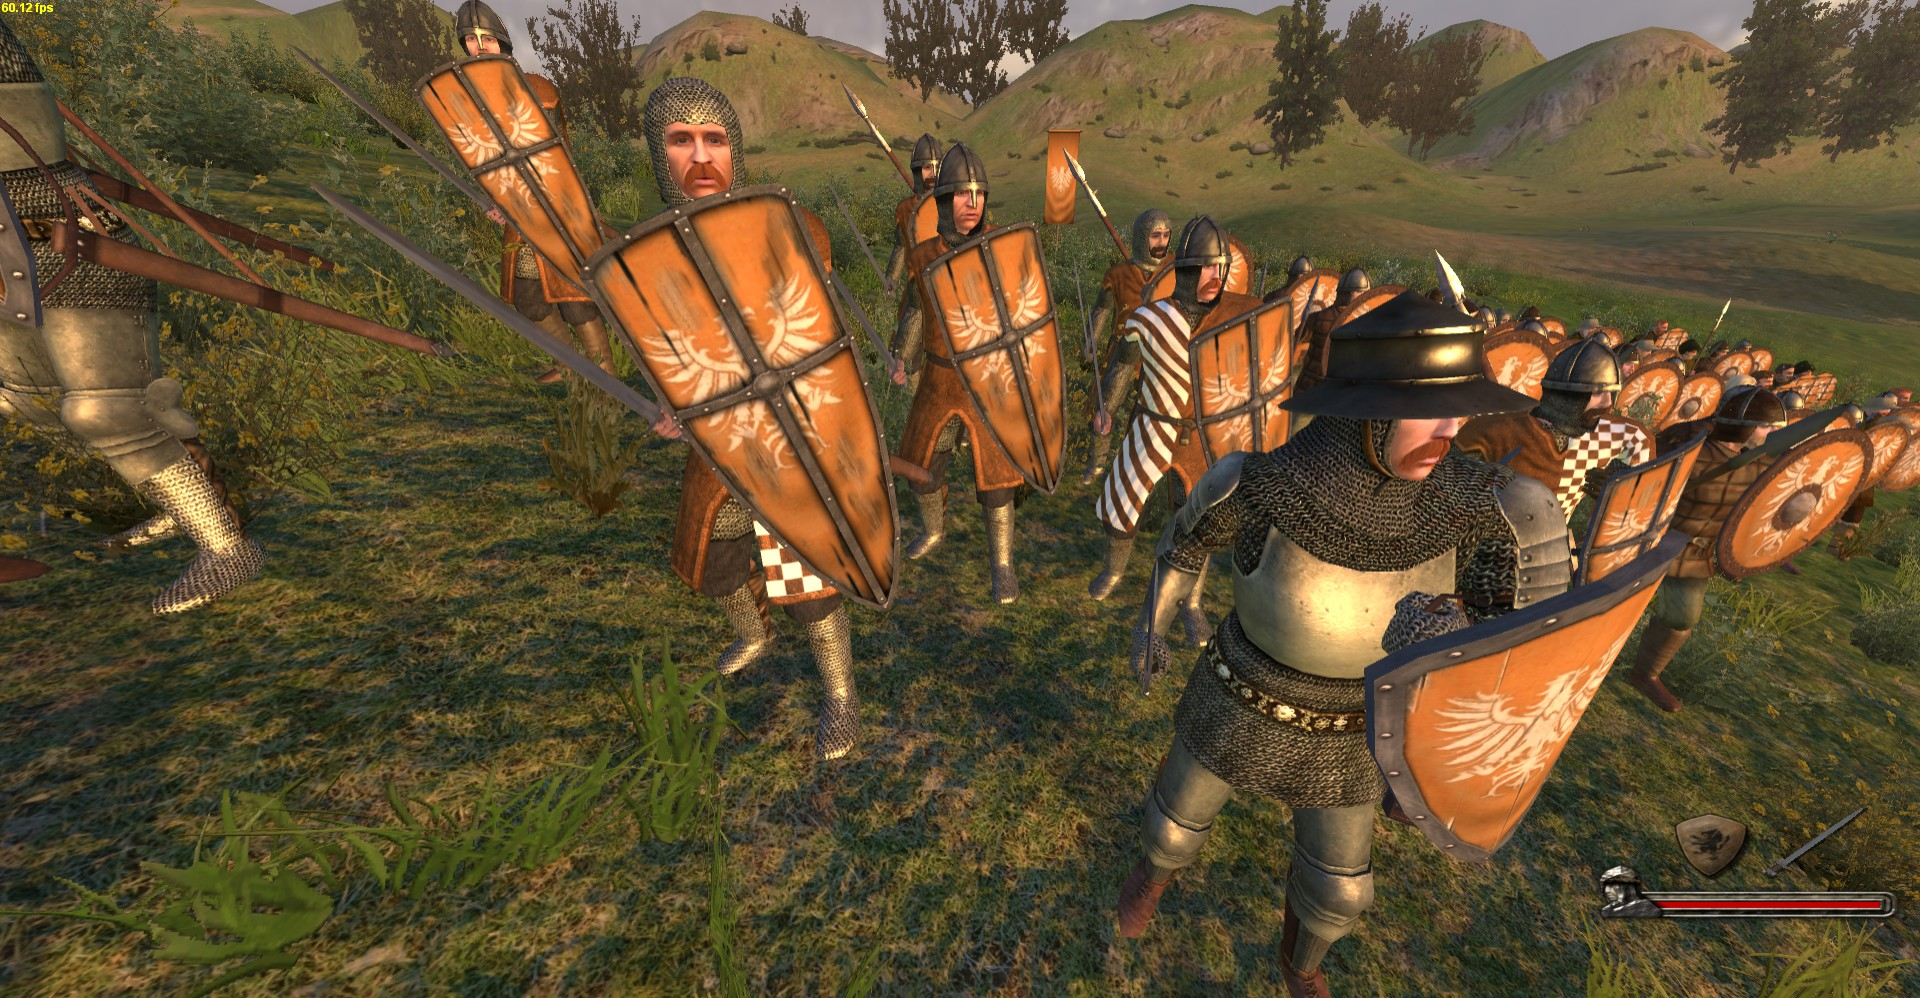 mount and blade how to quiclkly take all prisoners